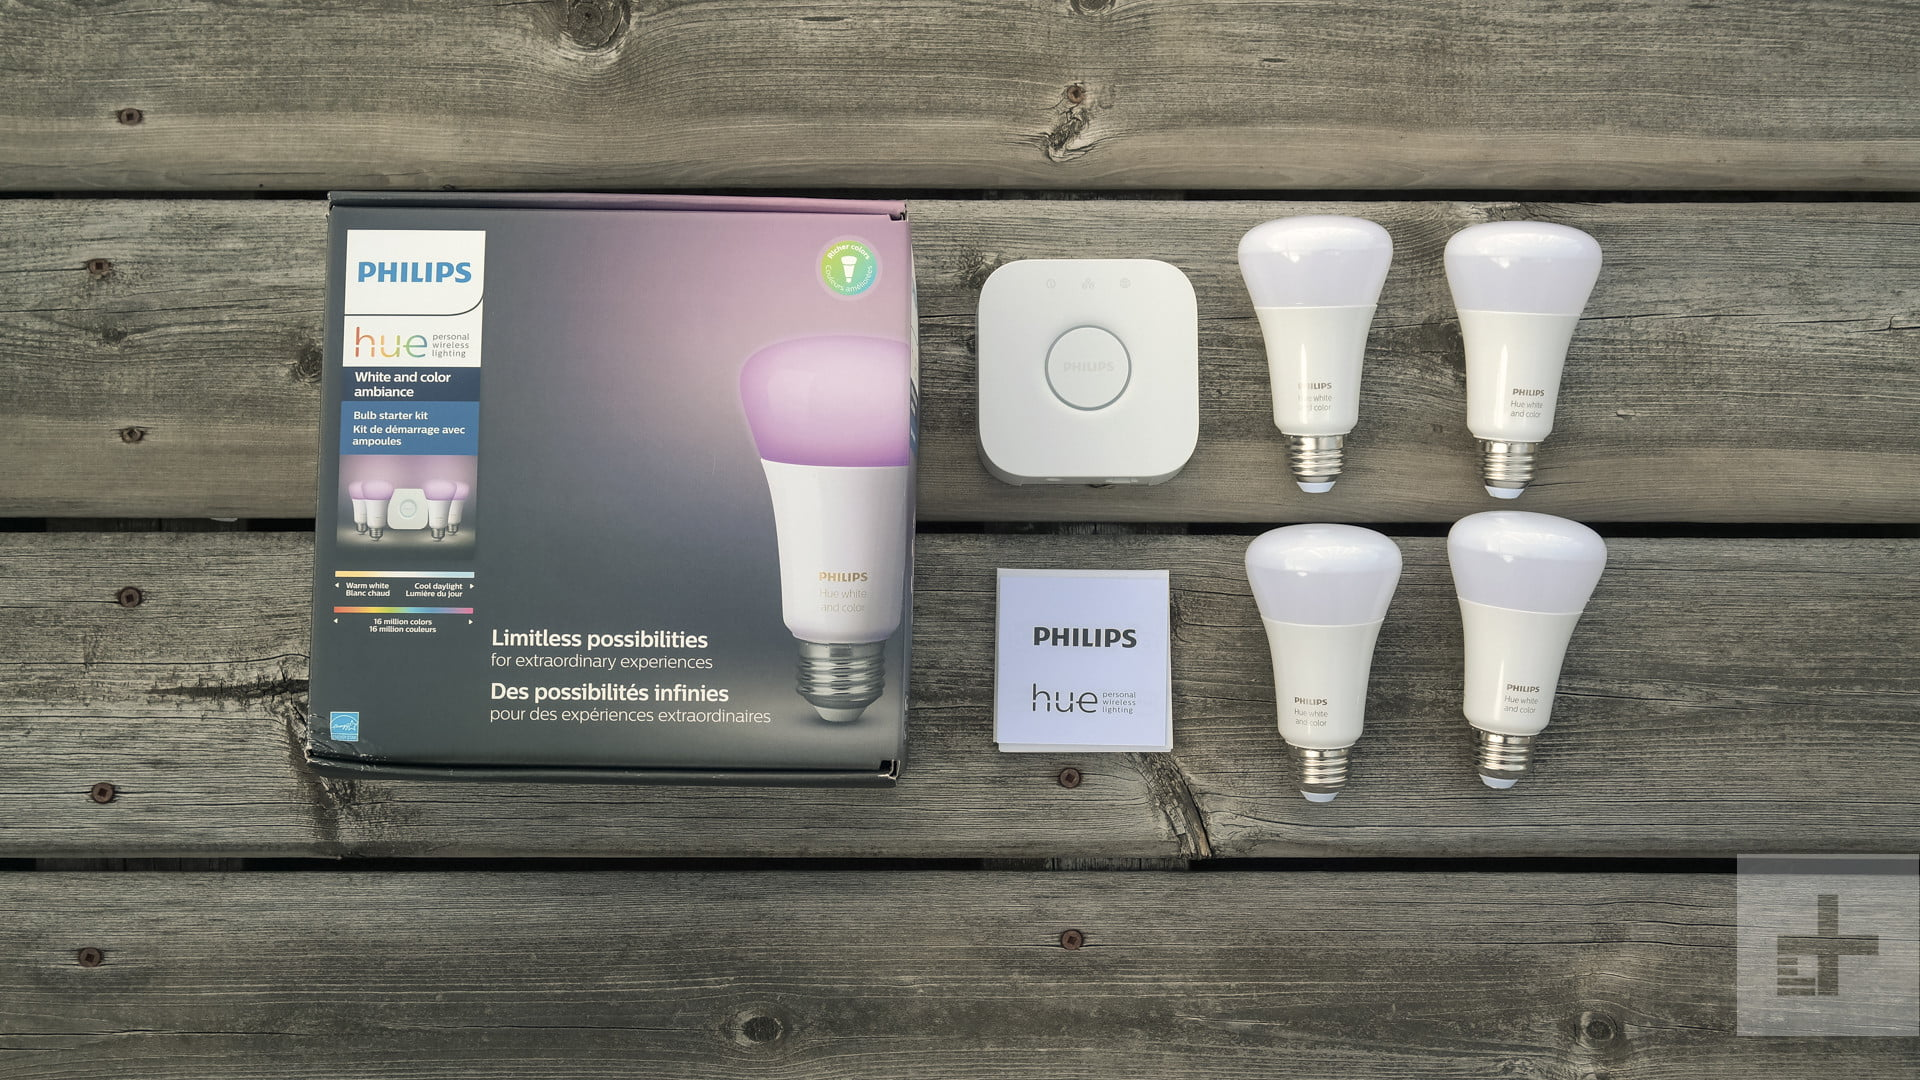 philips hue white and color ambience starter kit review digital trends. Black Bedroom Furniture Sets. Home Design Ideas